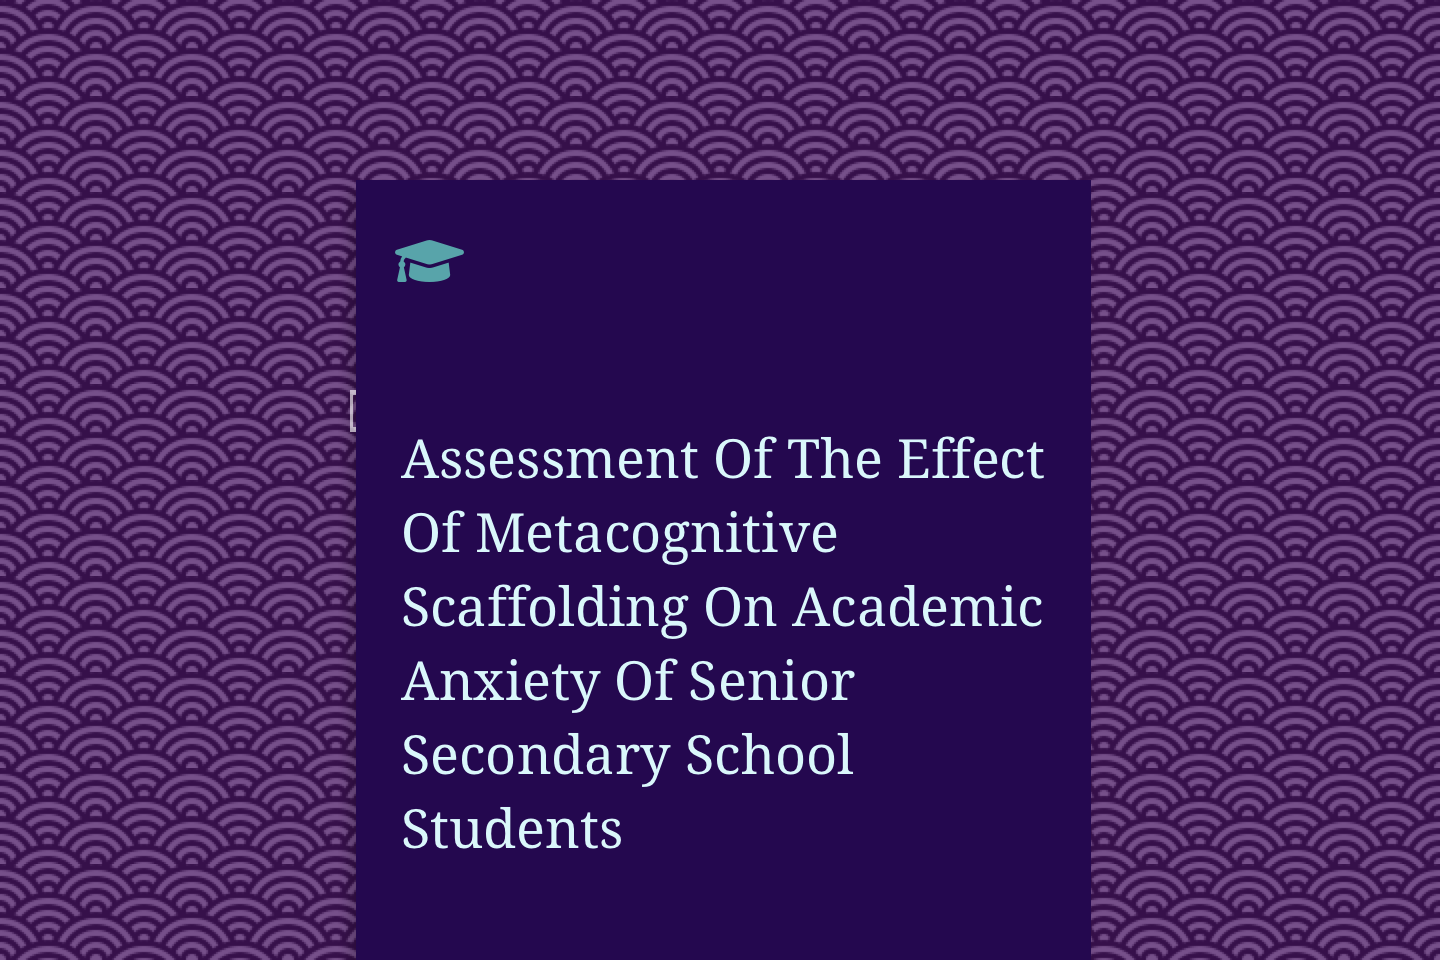 Assessment Of The Effect Of Metacognitive Scaffolding On Academic Anxiety Of Senior Secondary School Students